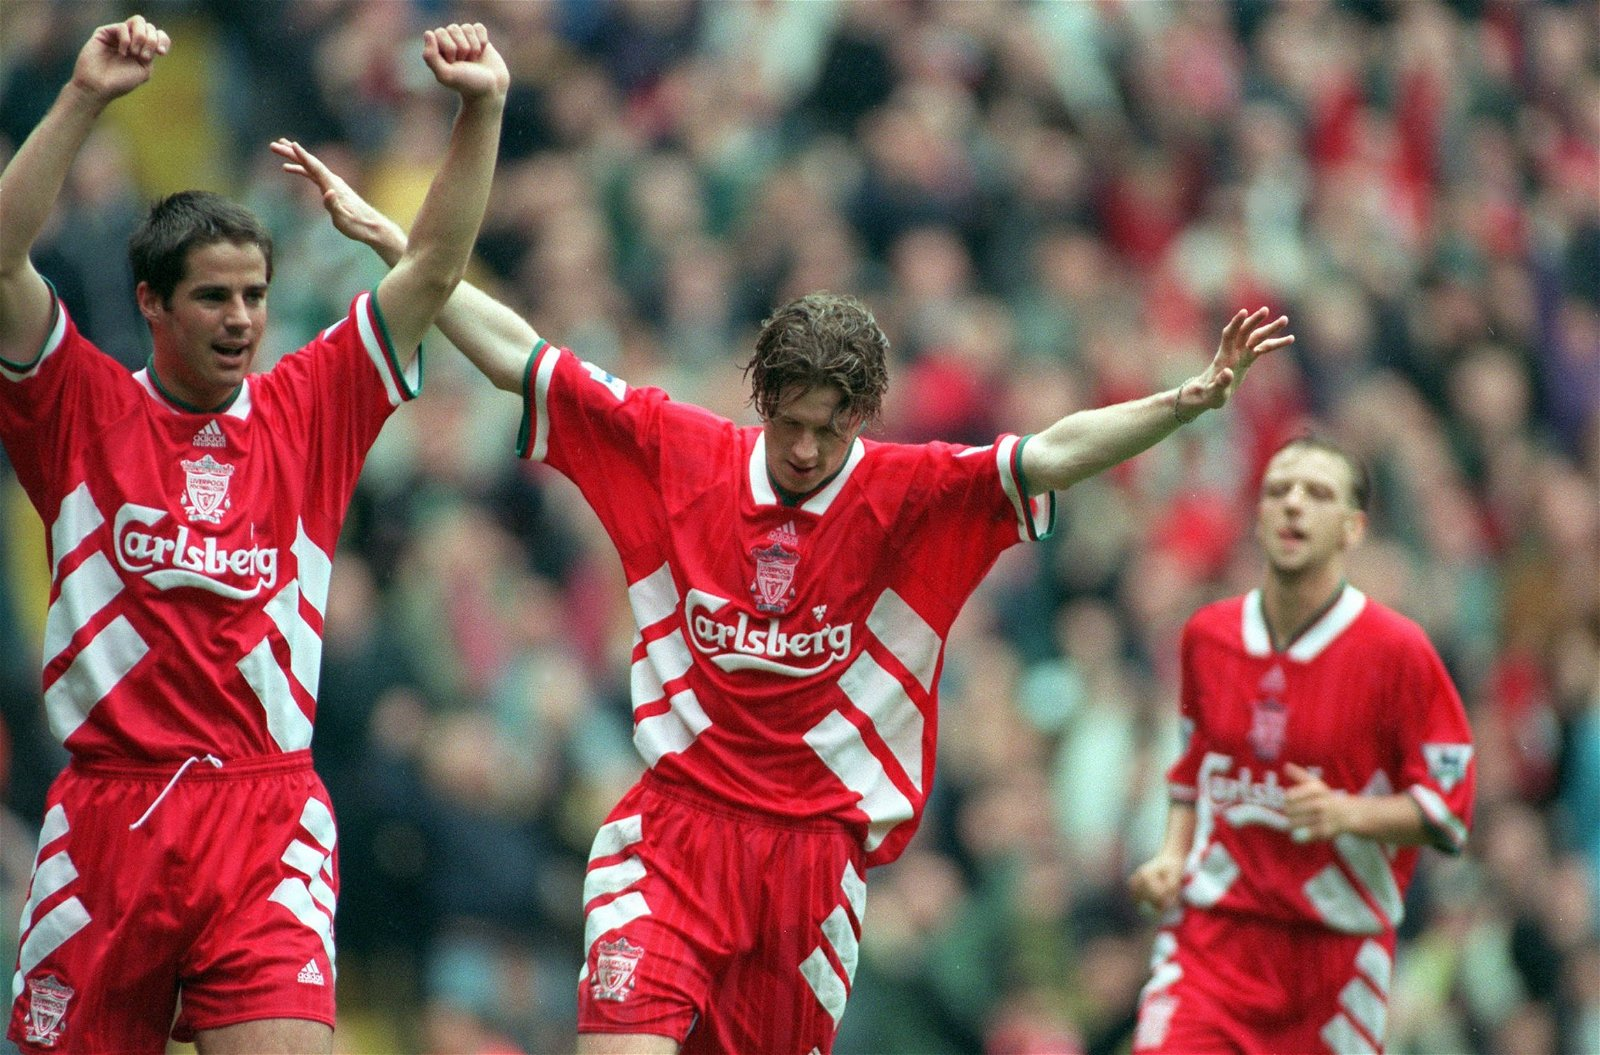 Steve McManaman celbrates scoring for Liverpool in 1994